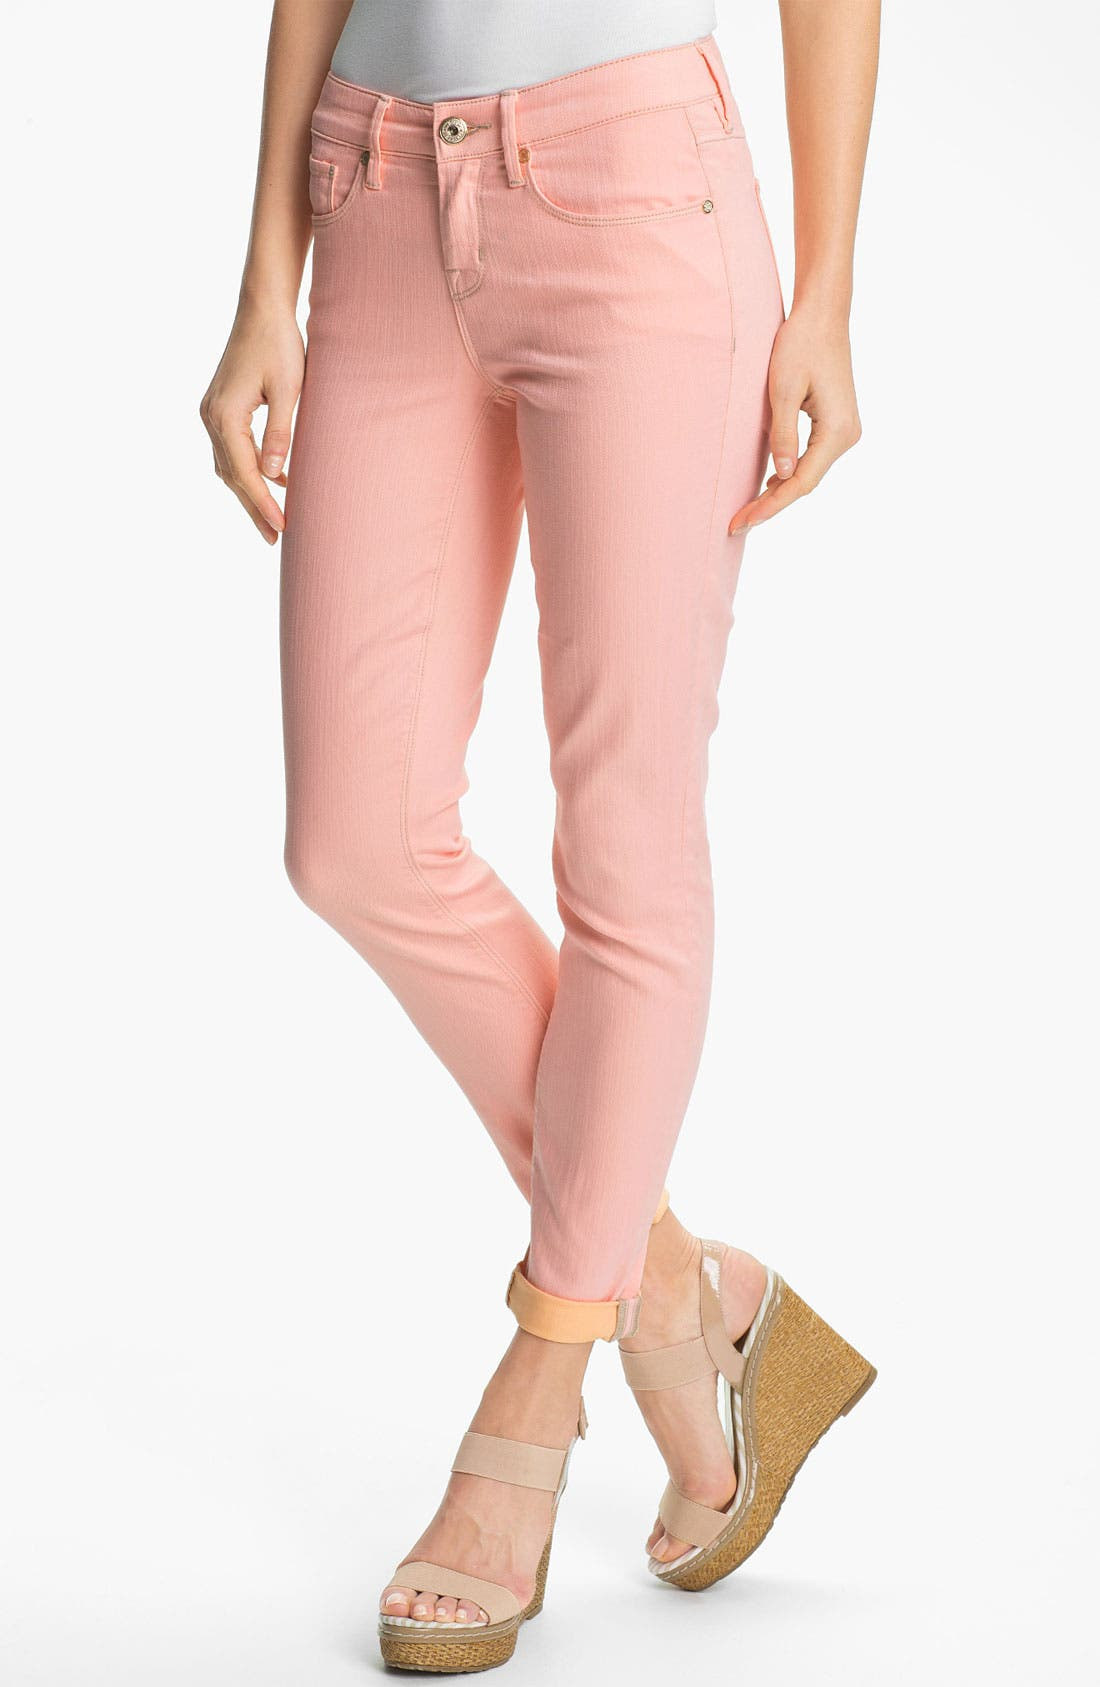 Alternate Image 1 Selected - Isaac Mizrahi Jeans Contrast Cuff Jeans